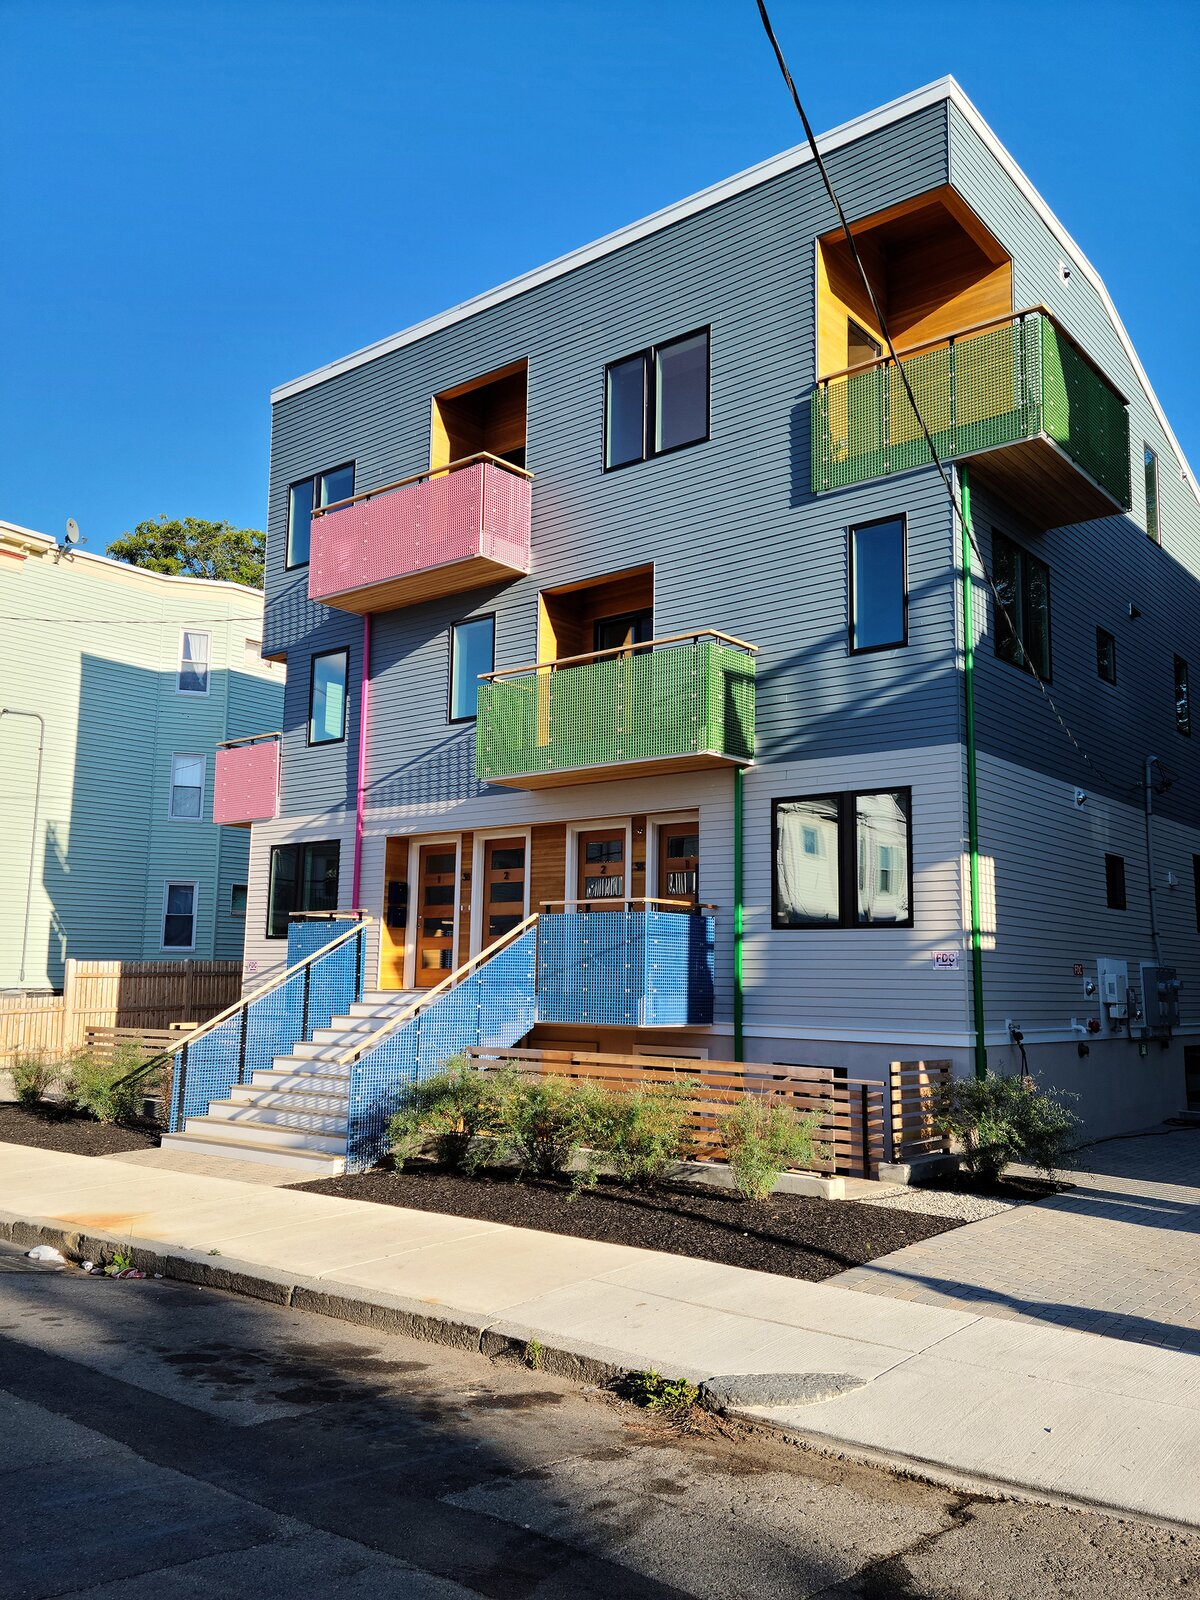 Photo 2 of 11 in 36-38 Colonial Avenue by Scott Payette Architects